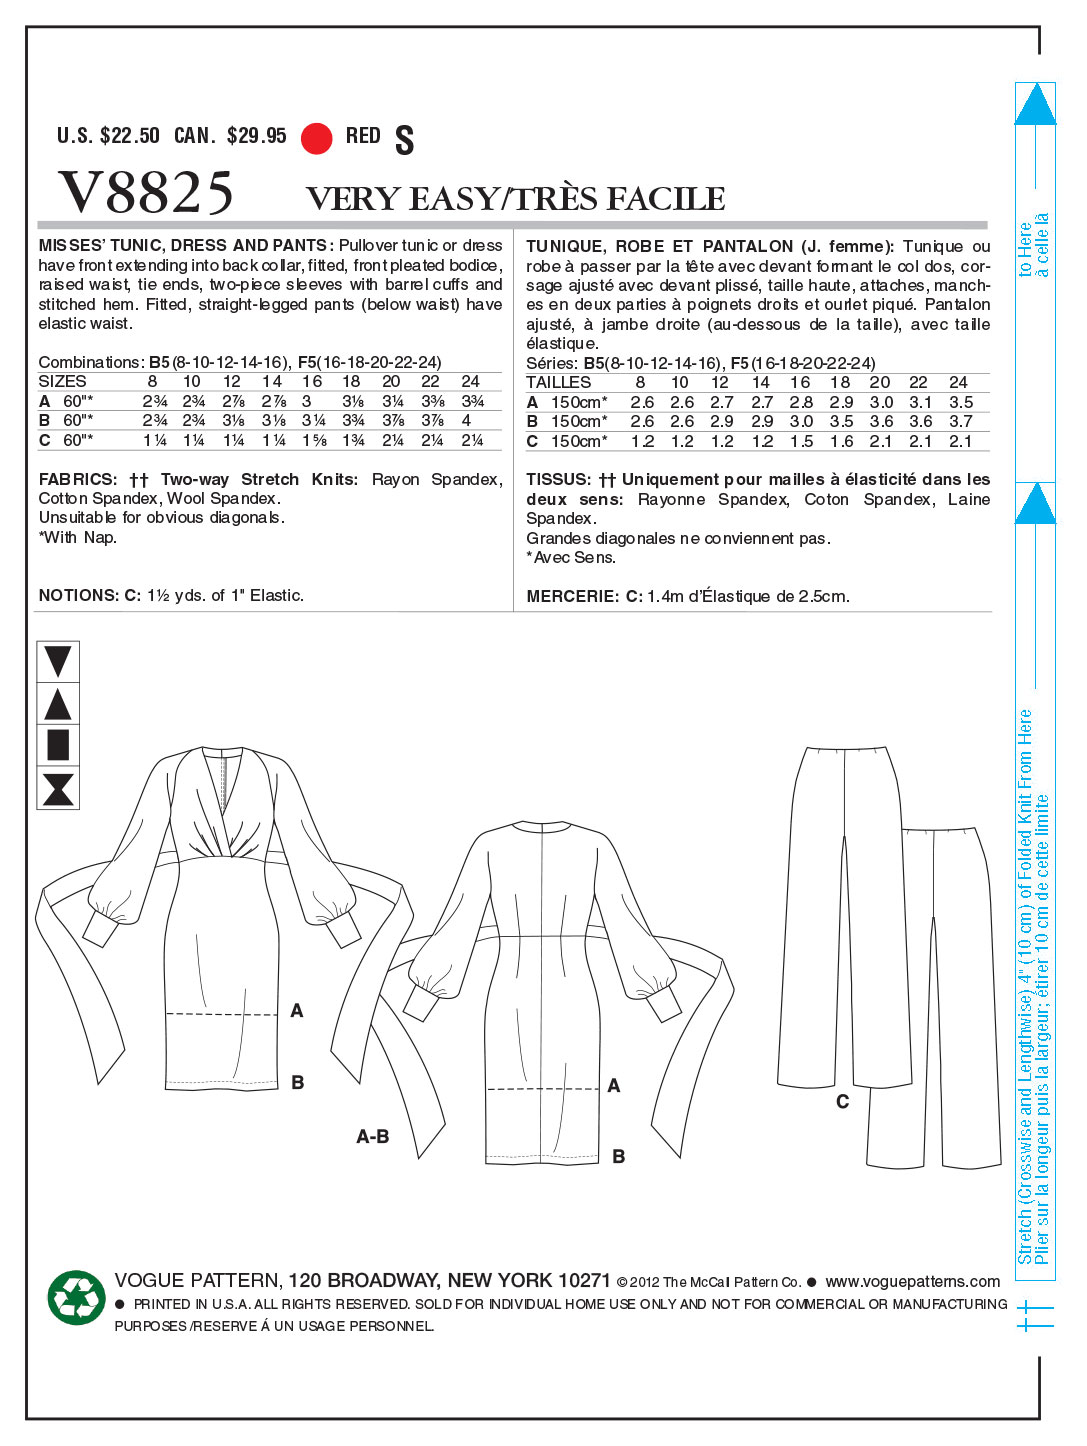 Vogue Patterns Misses Dress-V8825